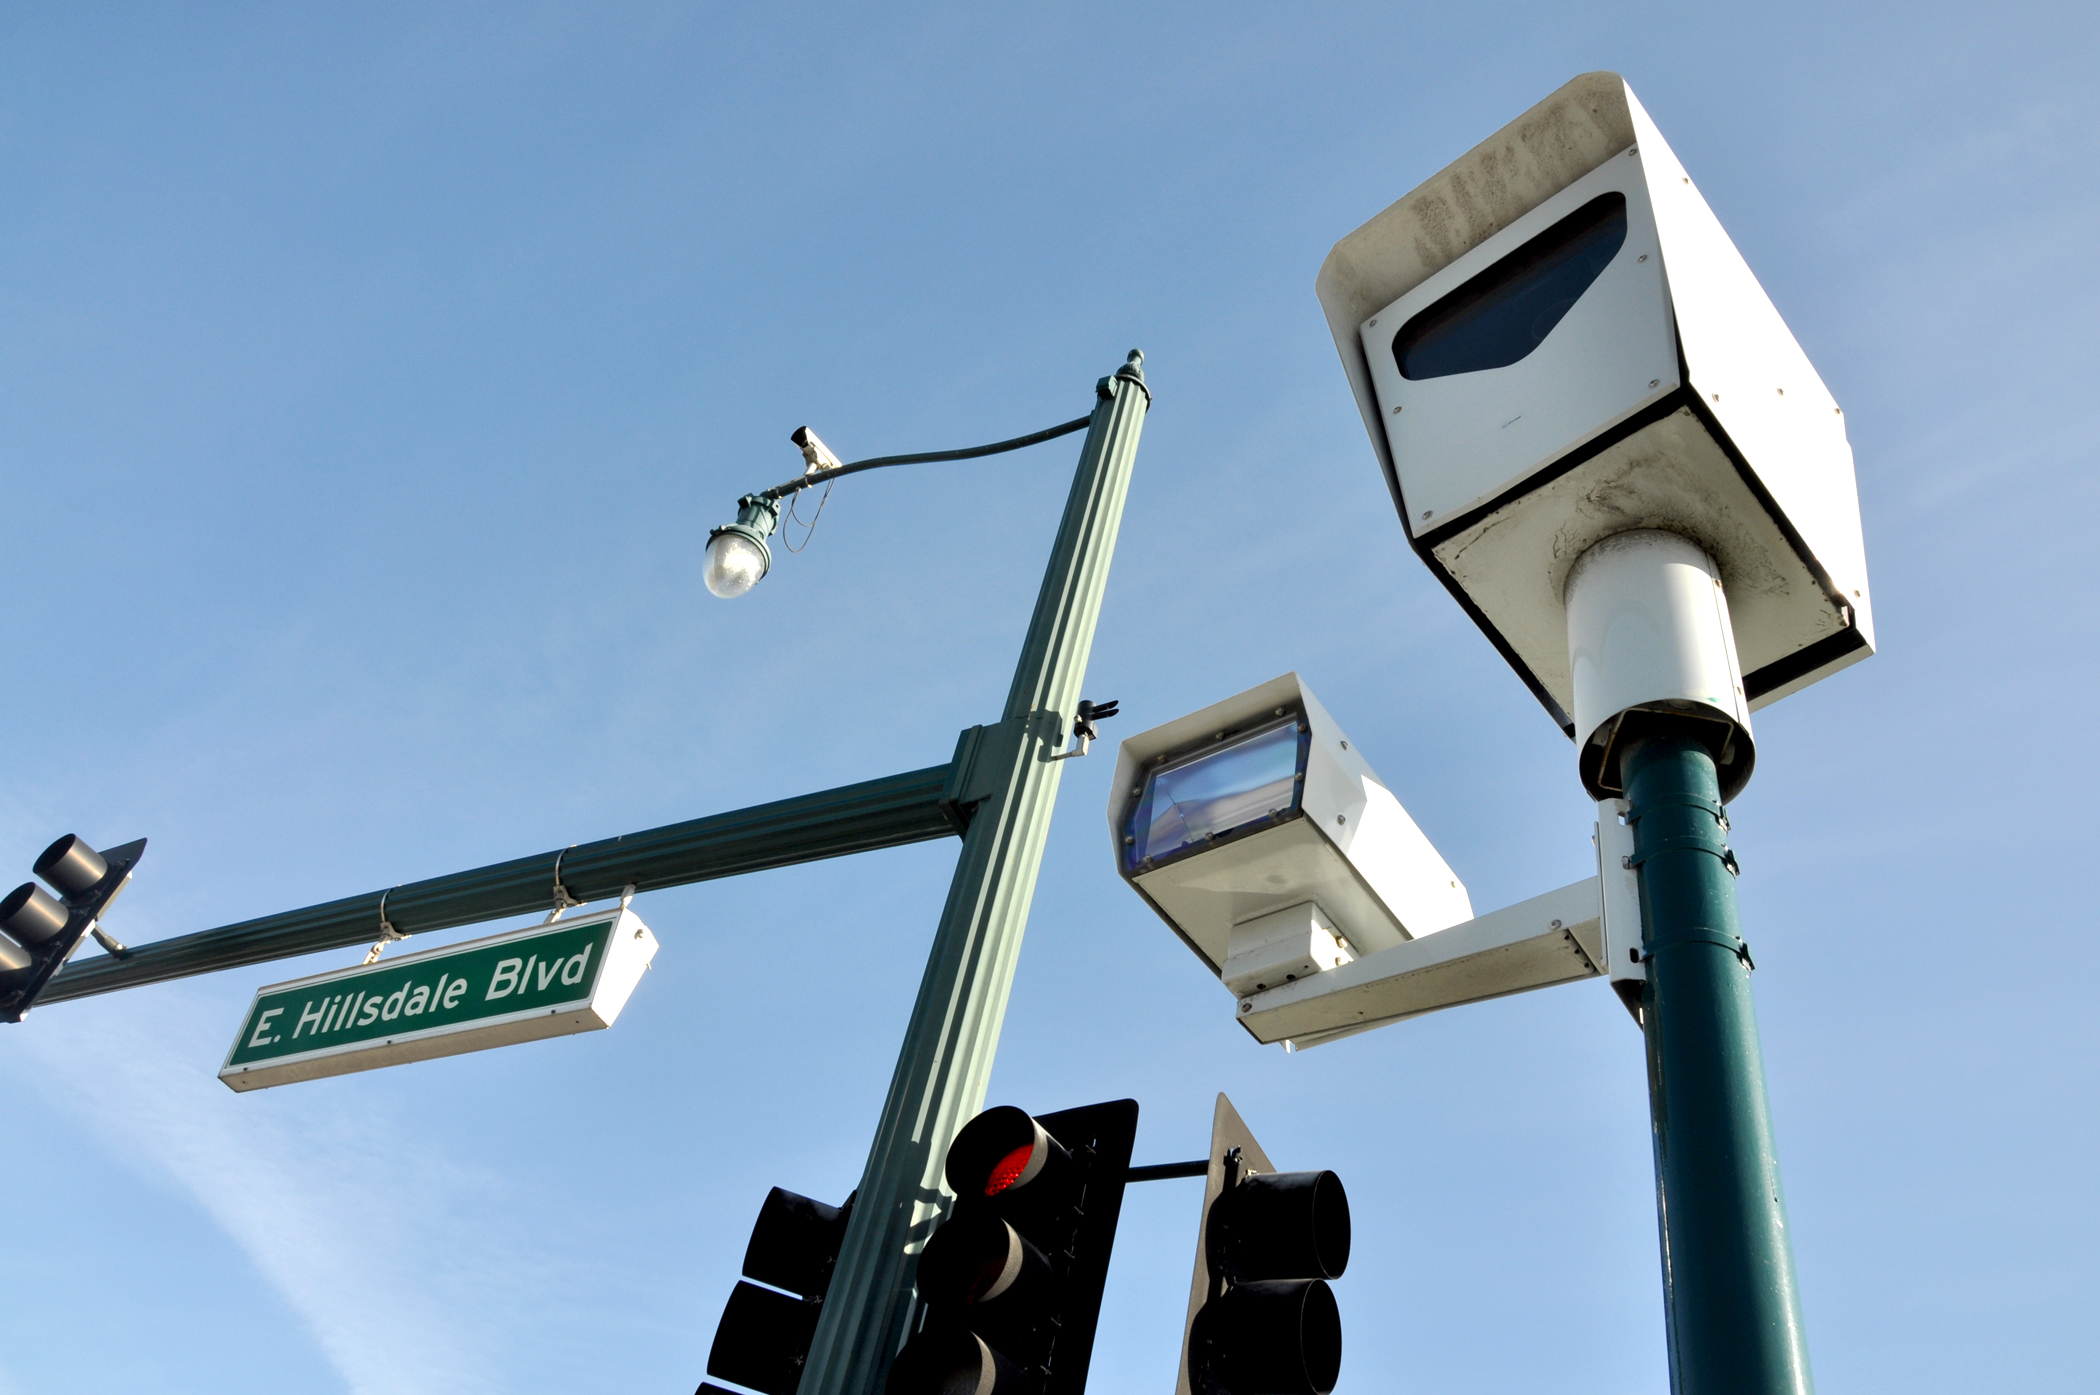 City ends red-light camera program, will dismiss or refund